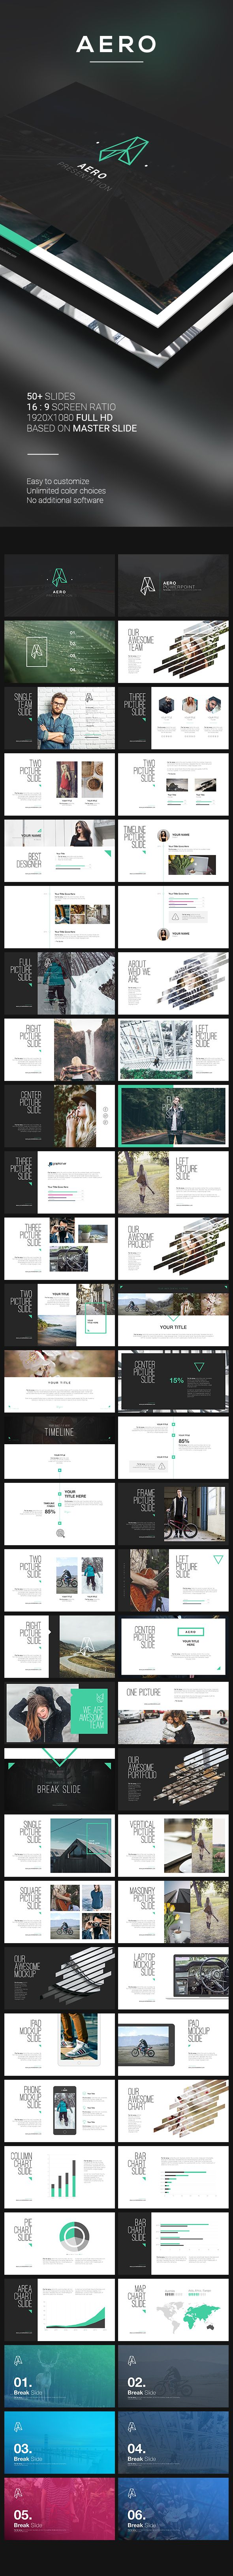 AERO PowerPoint Template - #PowerPoint #Templates #Presentation Templates Download here: https://graphicriver.net/item/aero-powerpoint-template/15867648?ref=alena994